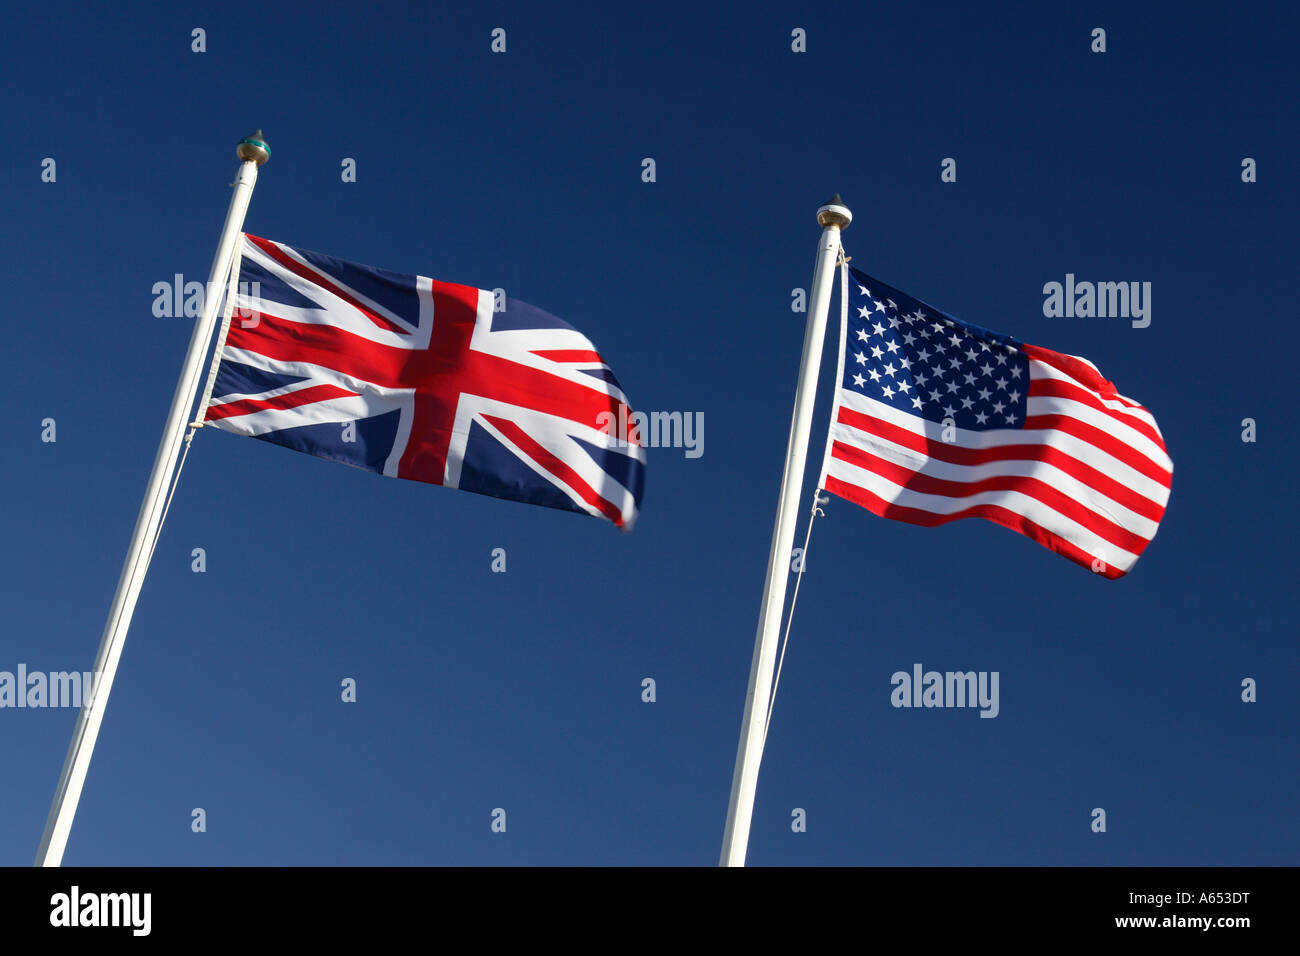 union jack and stars and stripes flags of uk and usa flying